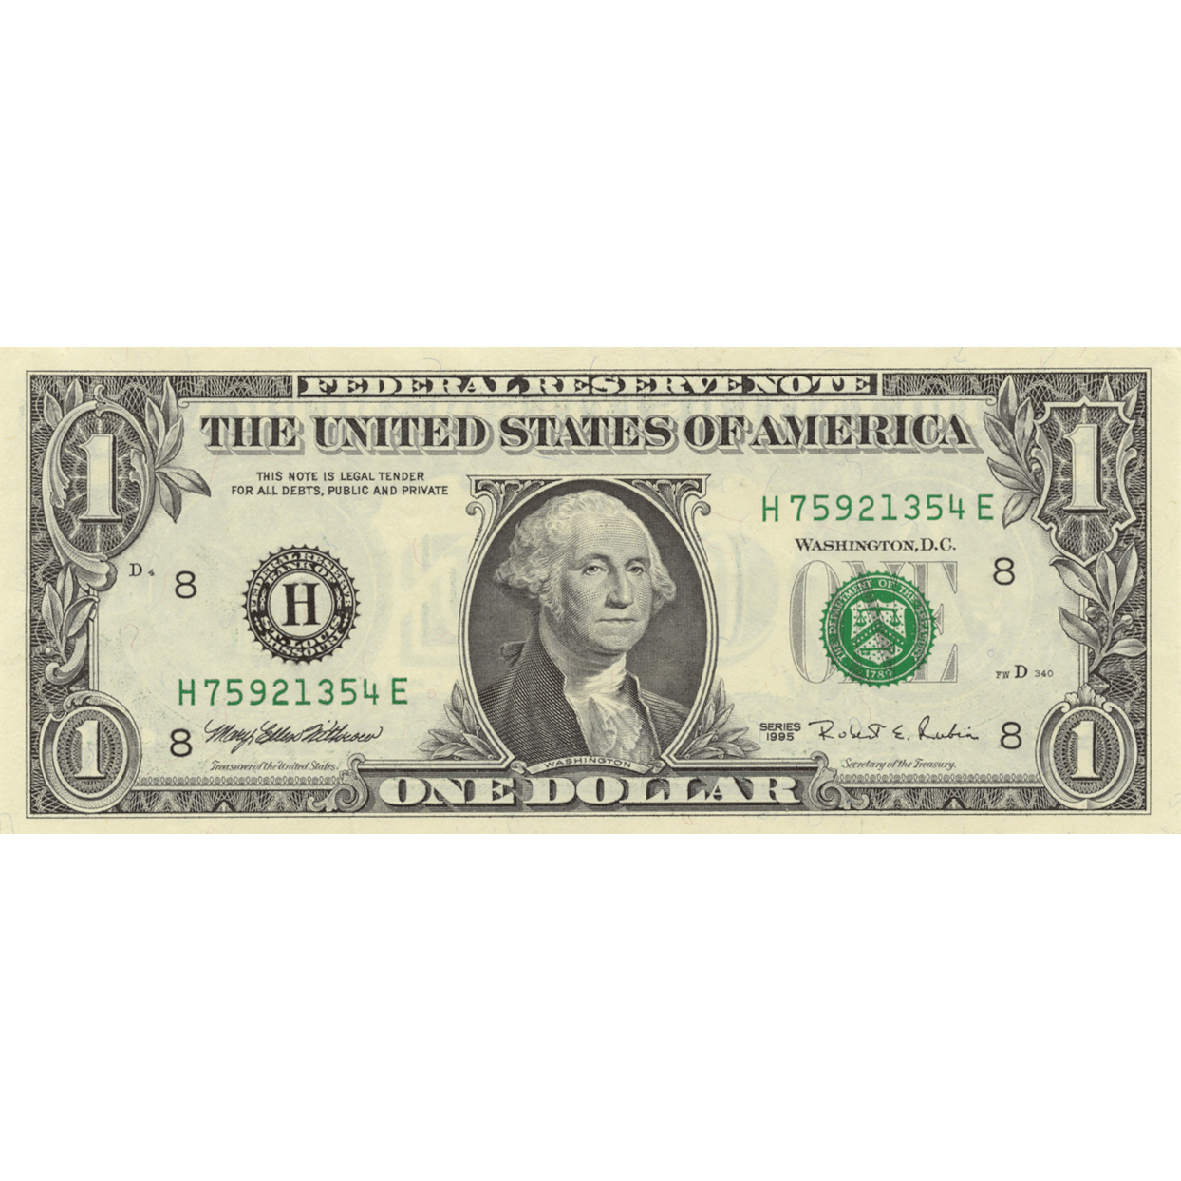 United States of America, 1 Dollar (obverse)